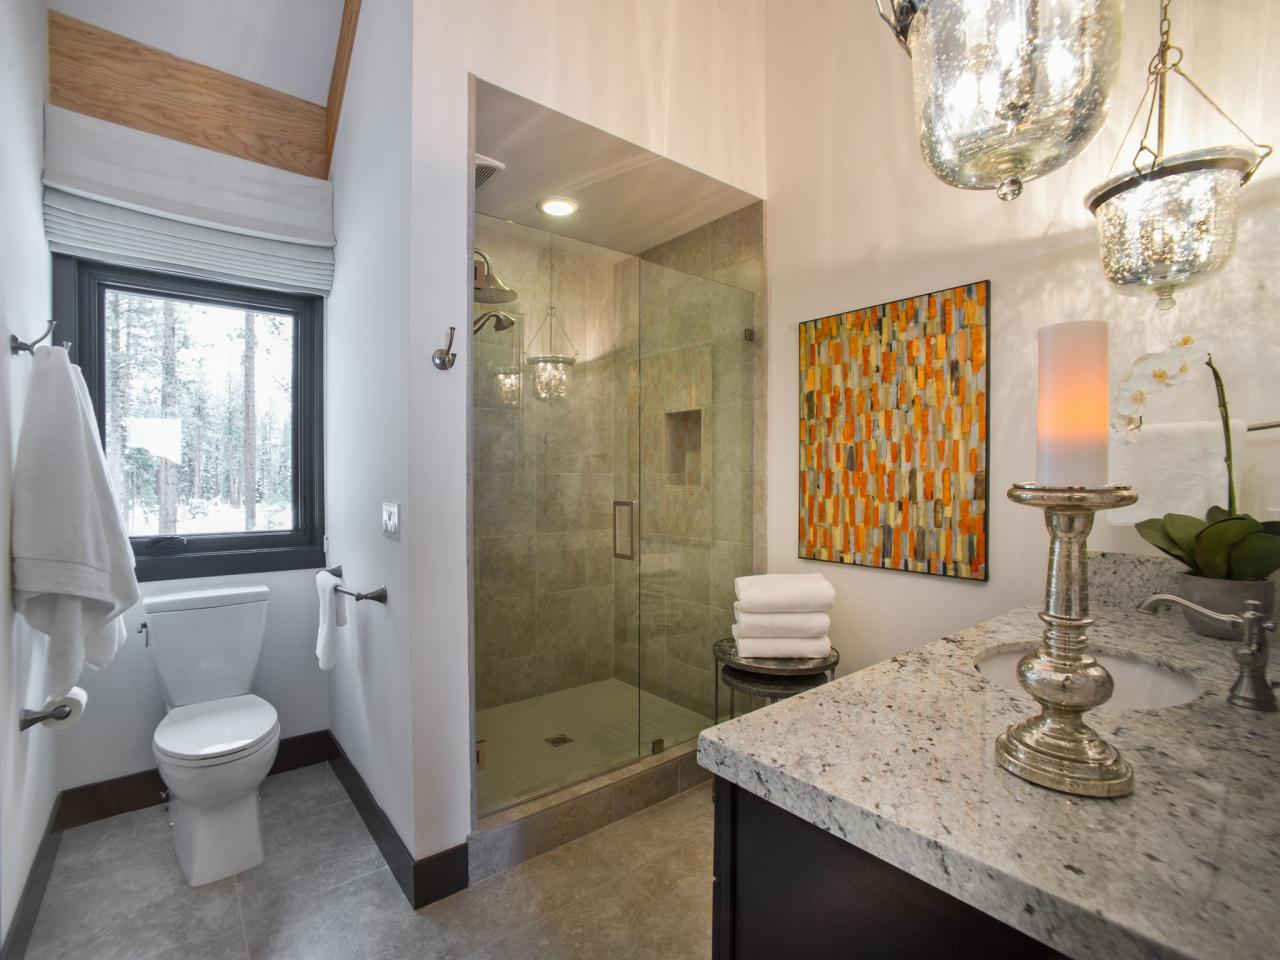 Guest bathroom from hgtv dream home 2014 pictures and for Bathroom designs hgtv